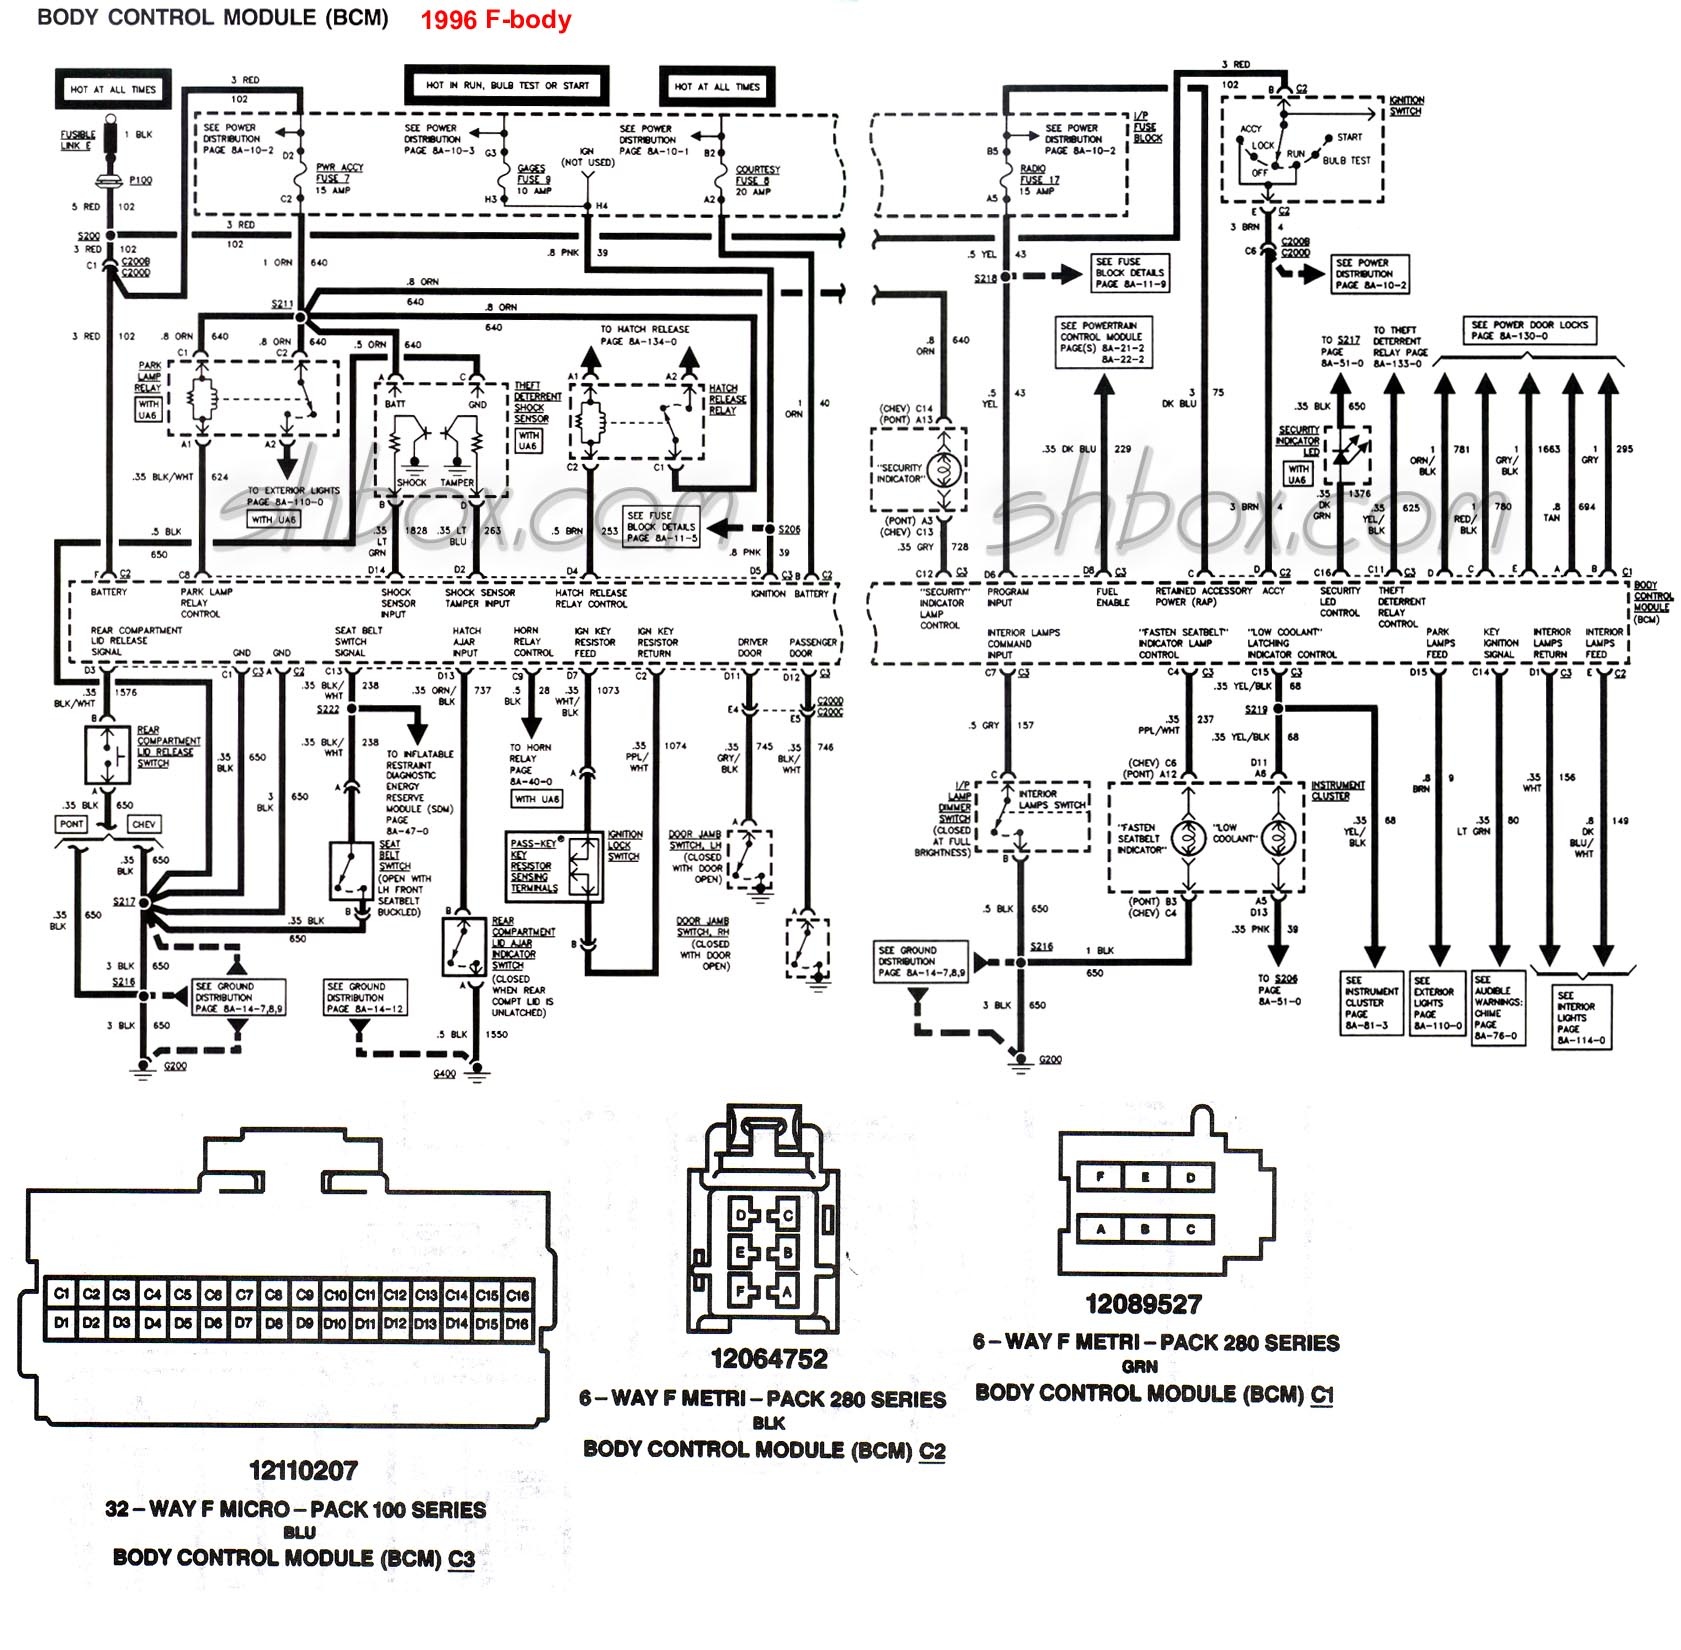 hight resolution of 1996 camaro fuse box wiring diagrams konsult 1996 camaro fuse box